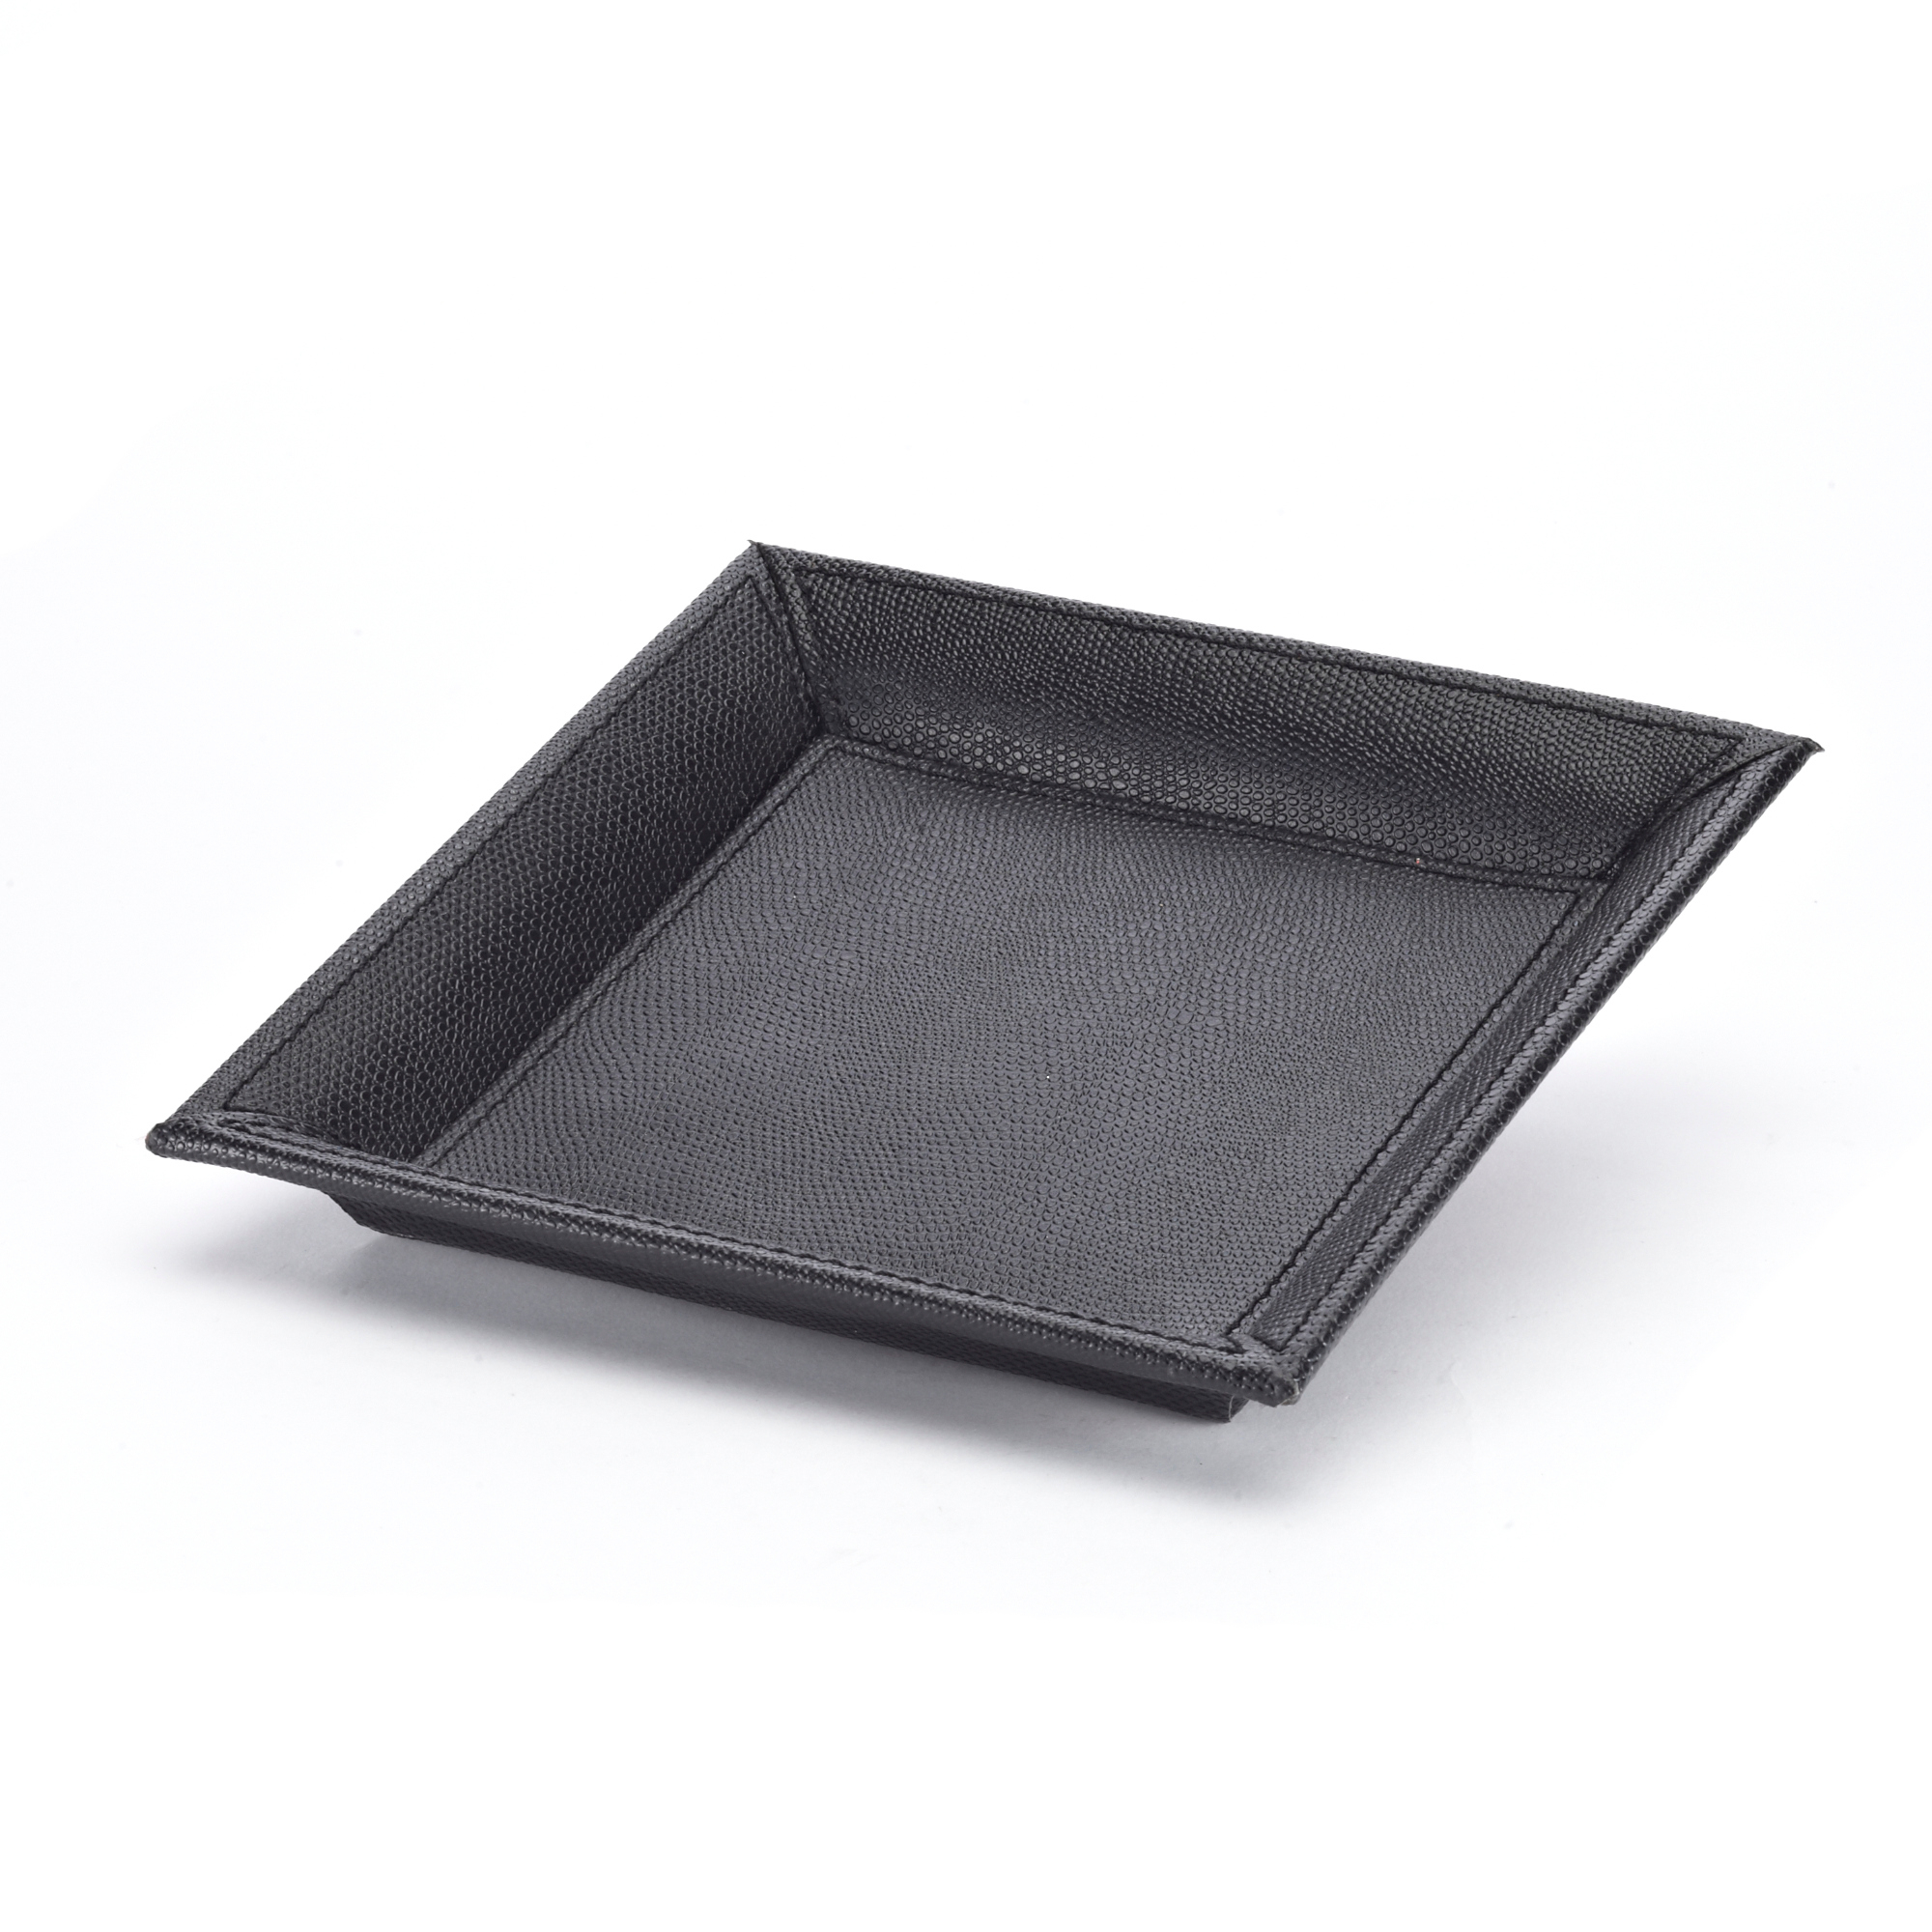 Faux Leather Drink Tray, Black